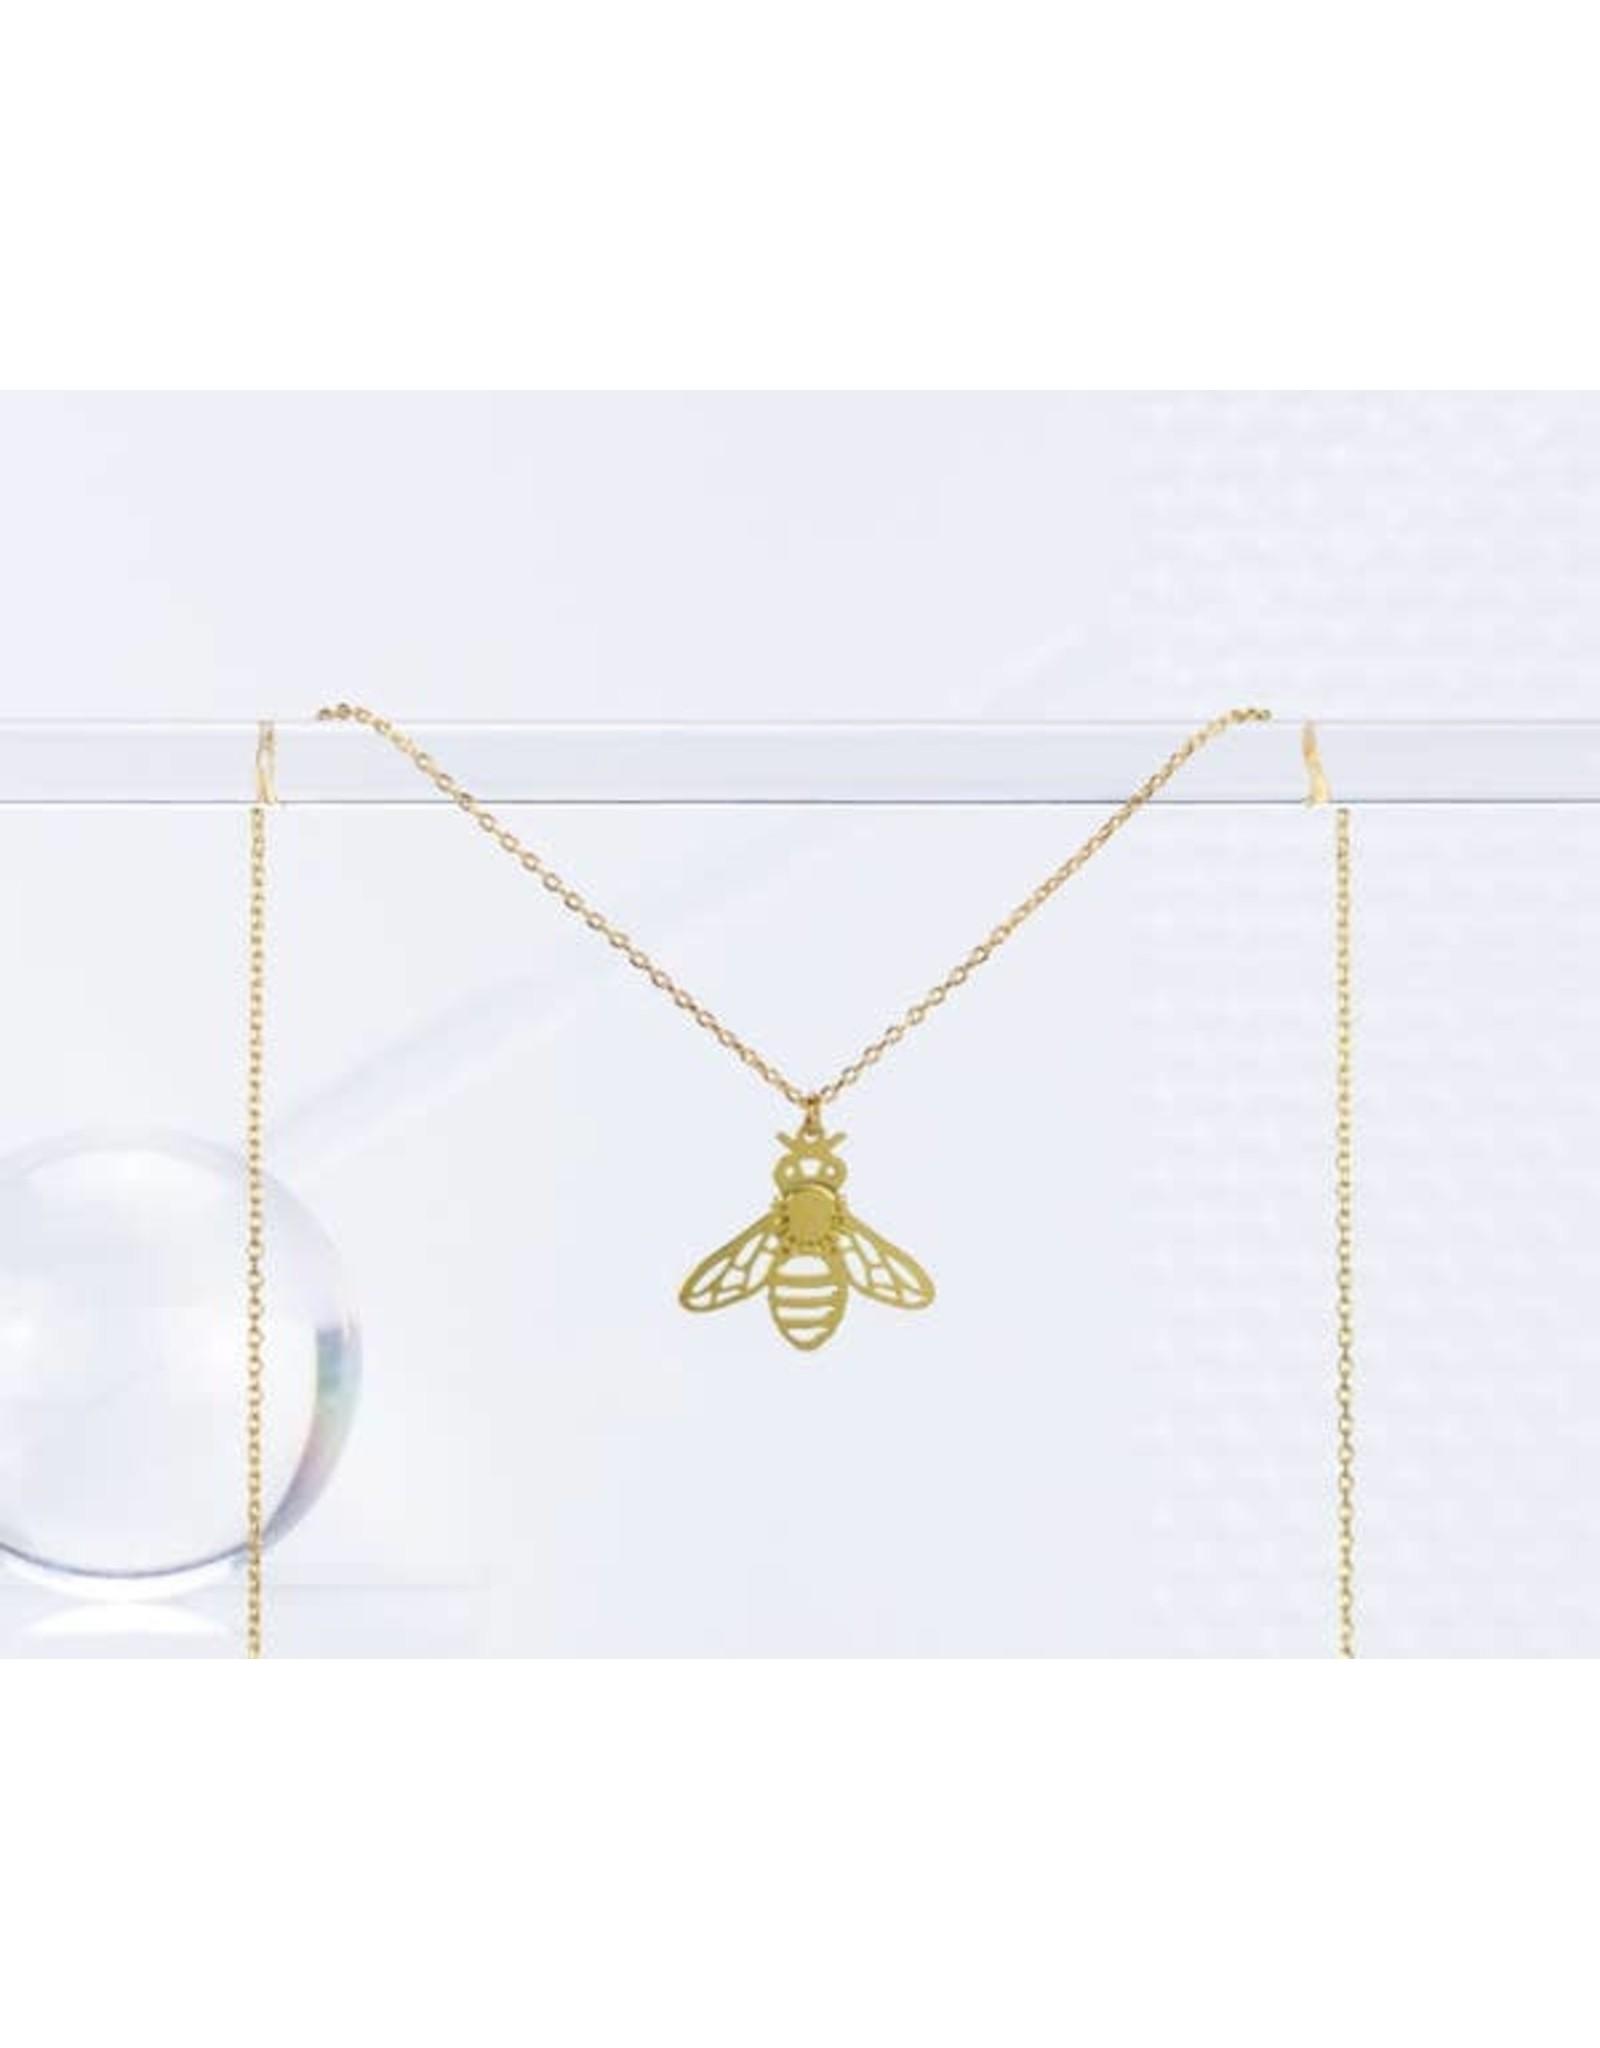 TLJ Honeybee Necklace: Gold